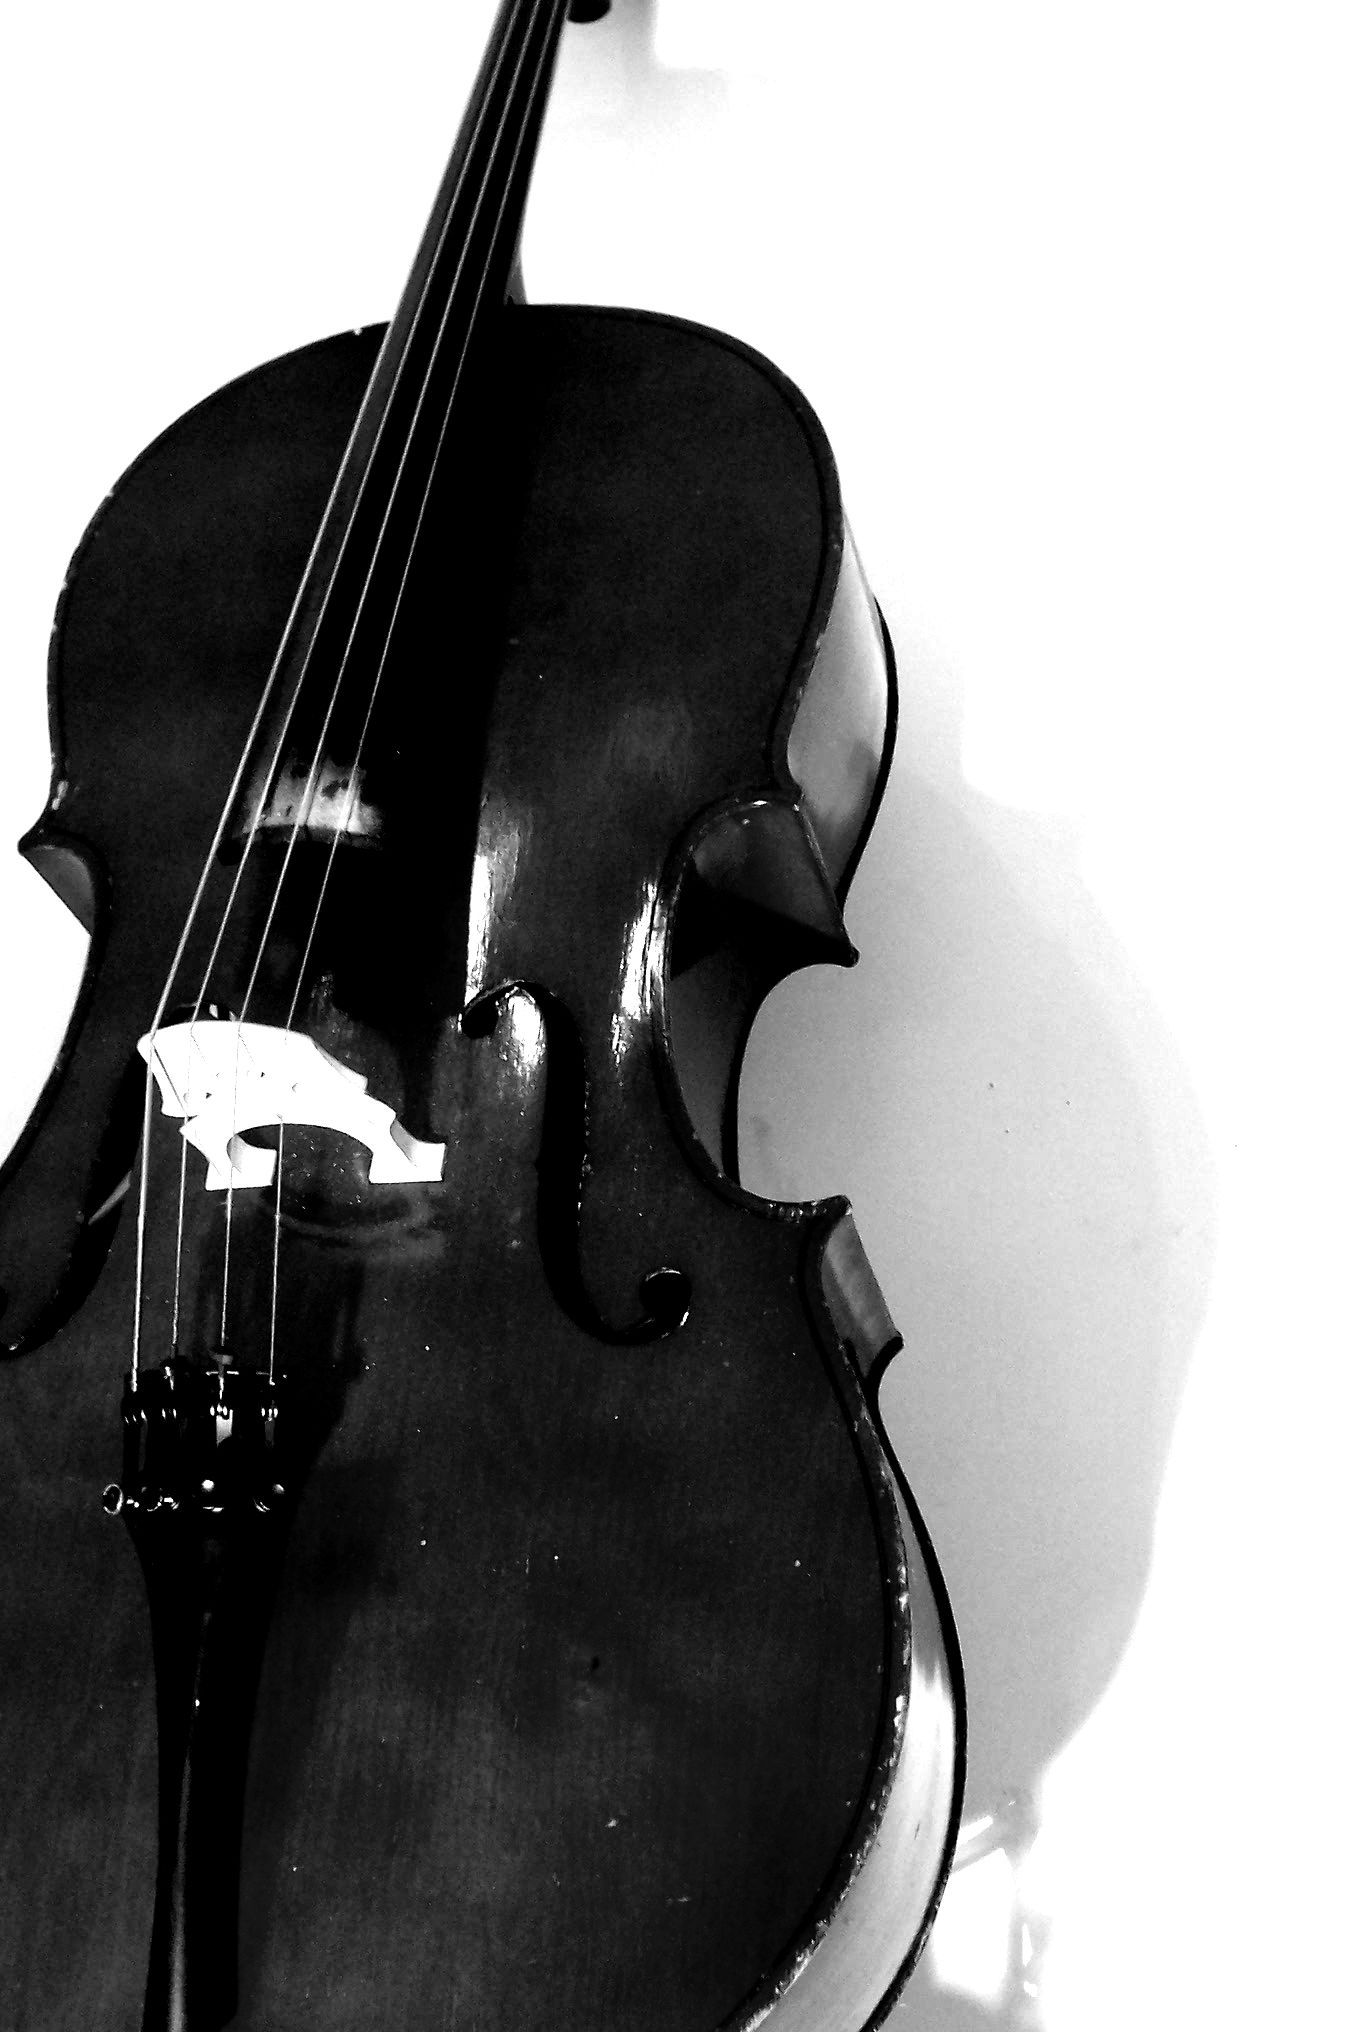 Group Of Cello Wallpaper